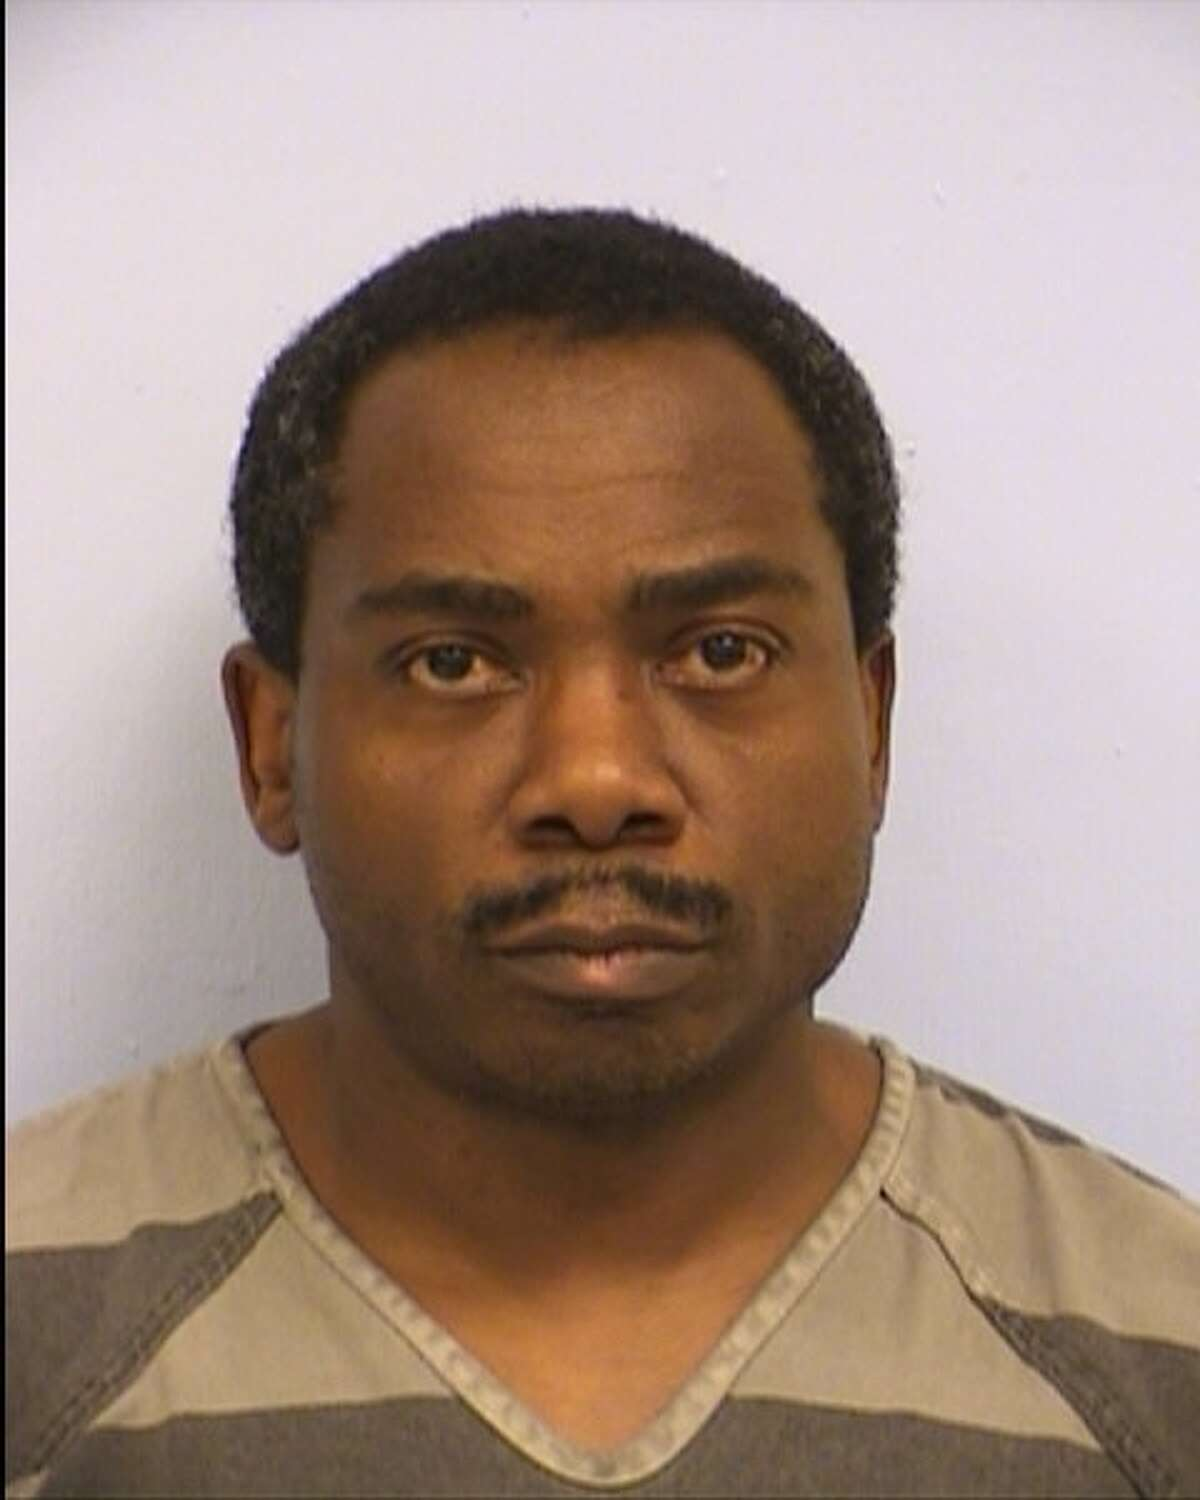 Christopher Washington, 43, was arrested and charged with indecent exposure in Austin March 28, 2017.